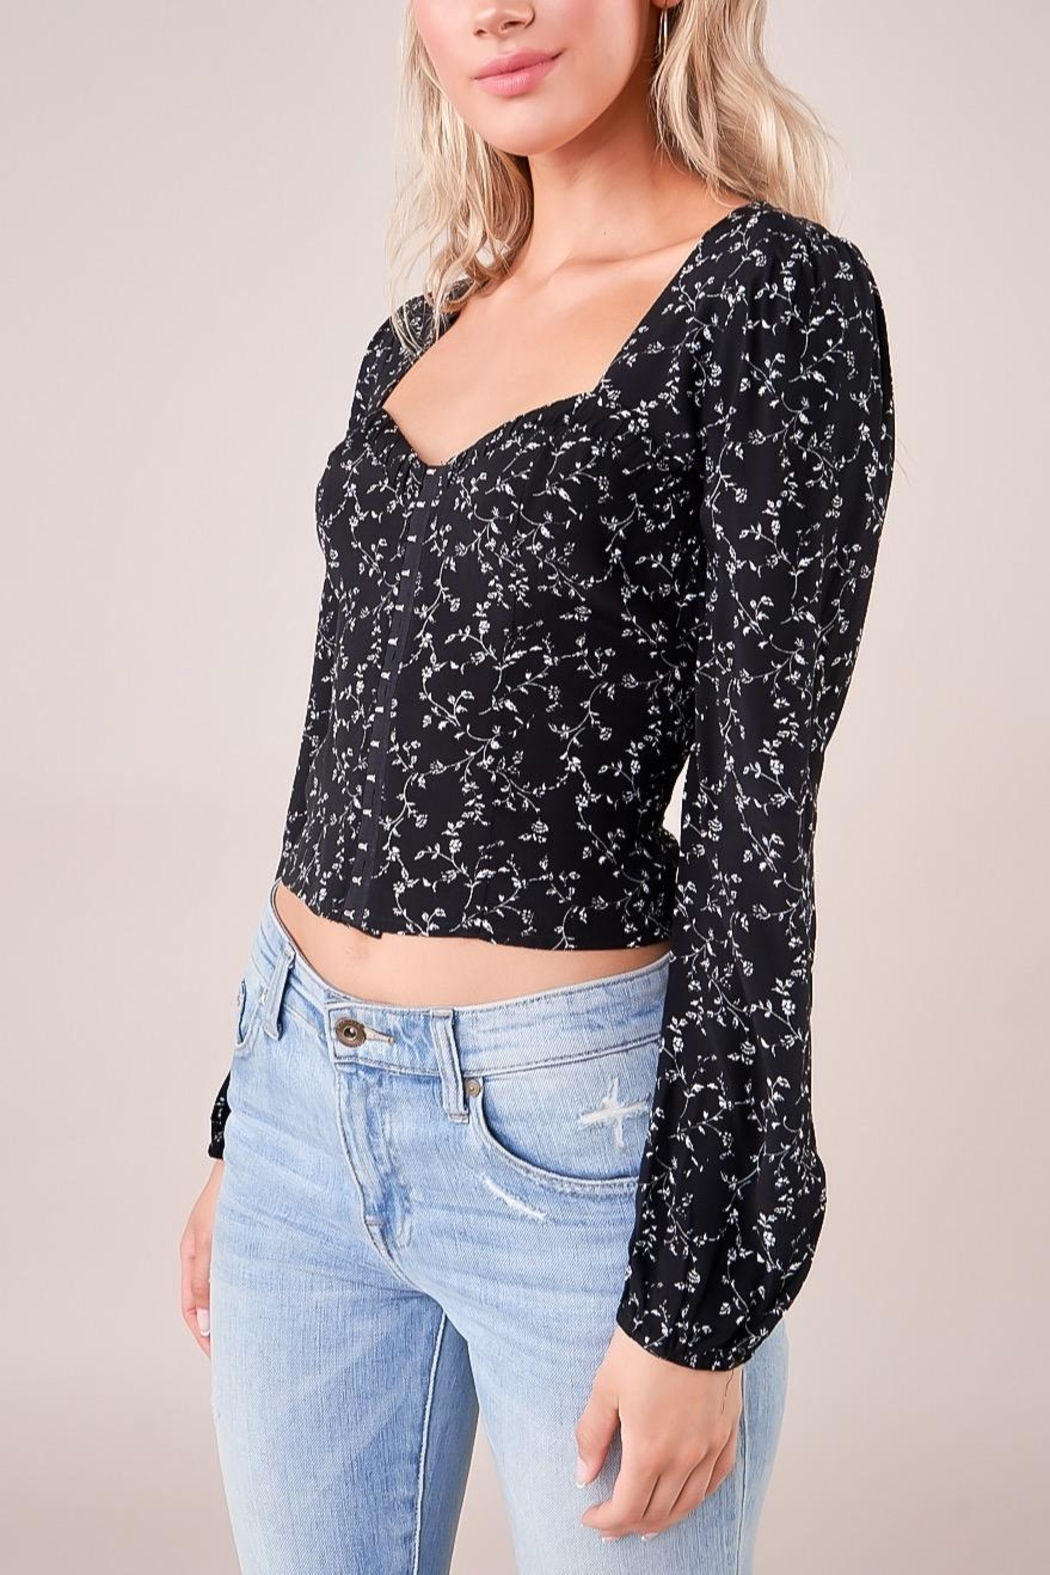 Sugarlips Floral Bustier Top - Front Full Image